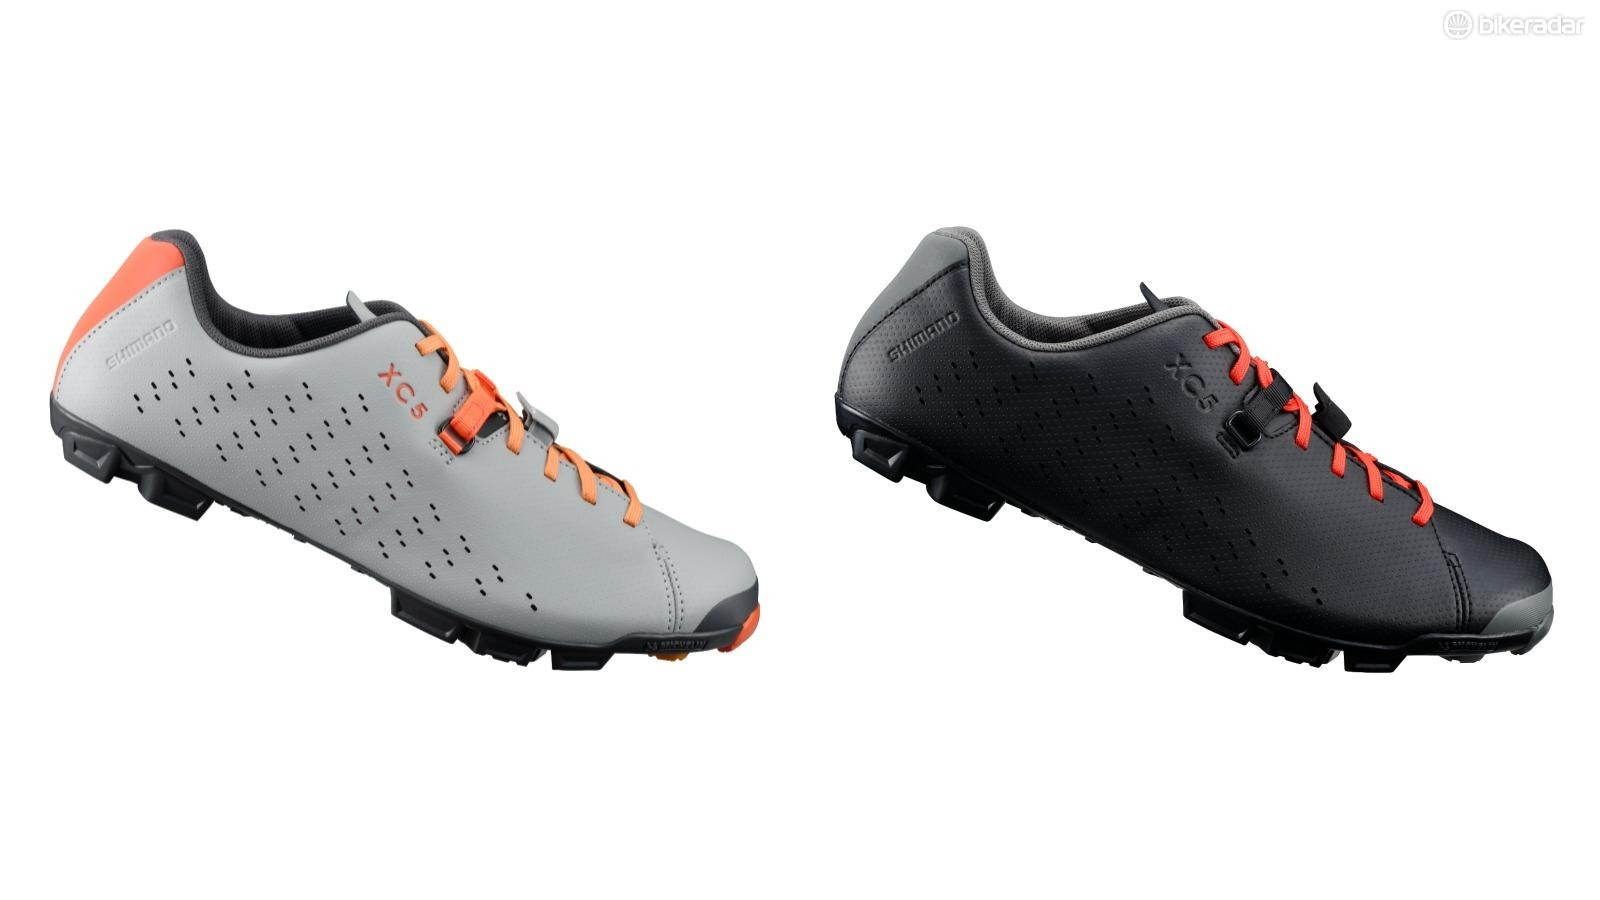 The XC5 is an all-new gravel shoe from Shimano